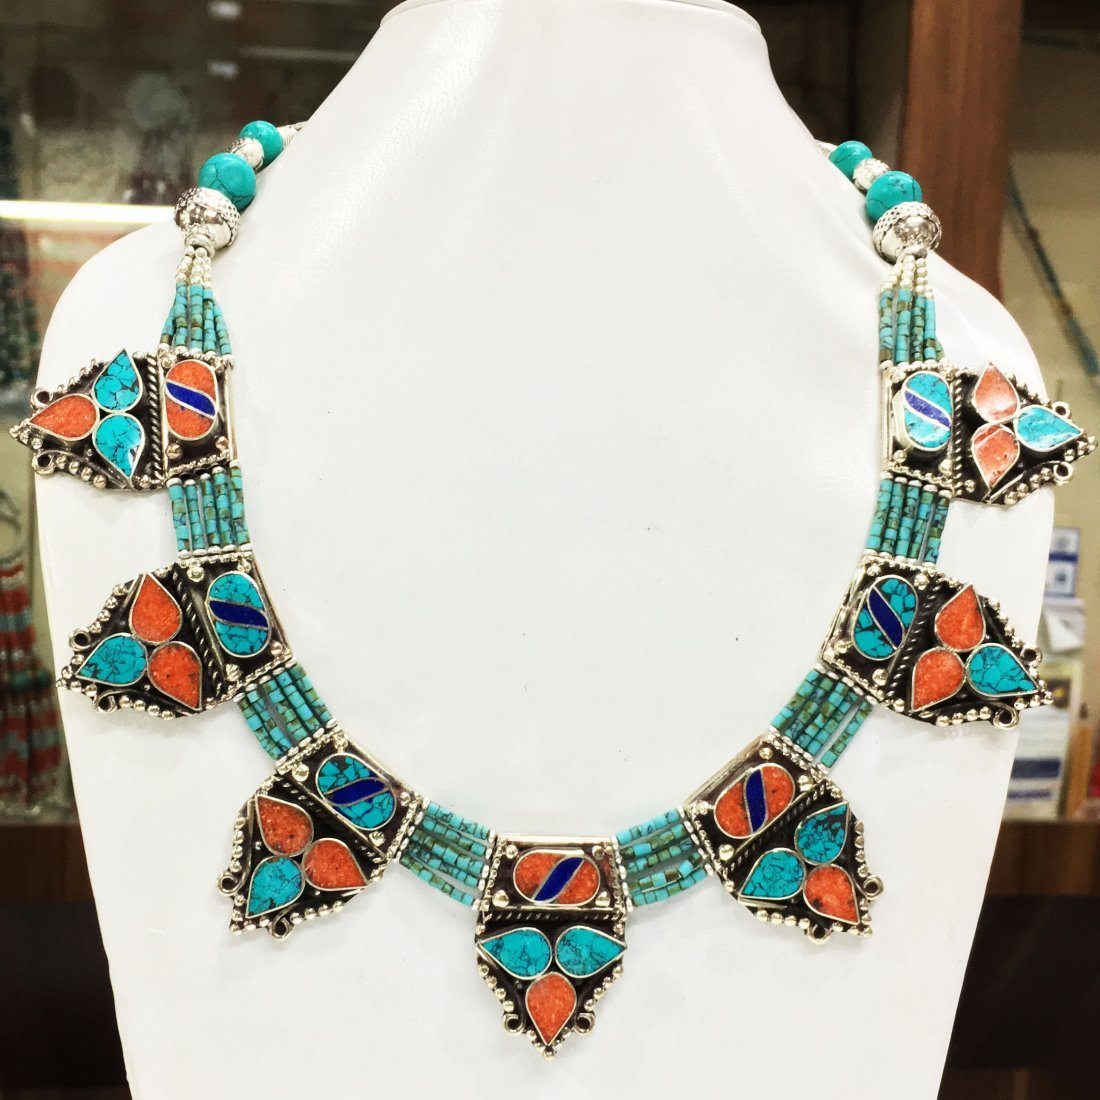 Tibetan Coral & Turquoise Beaded Necklace